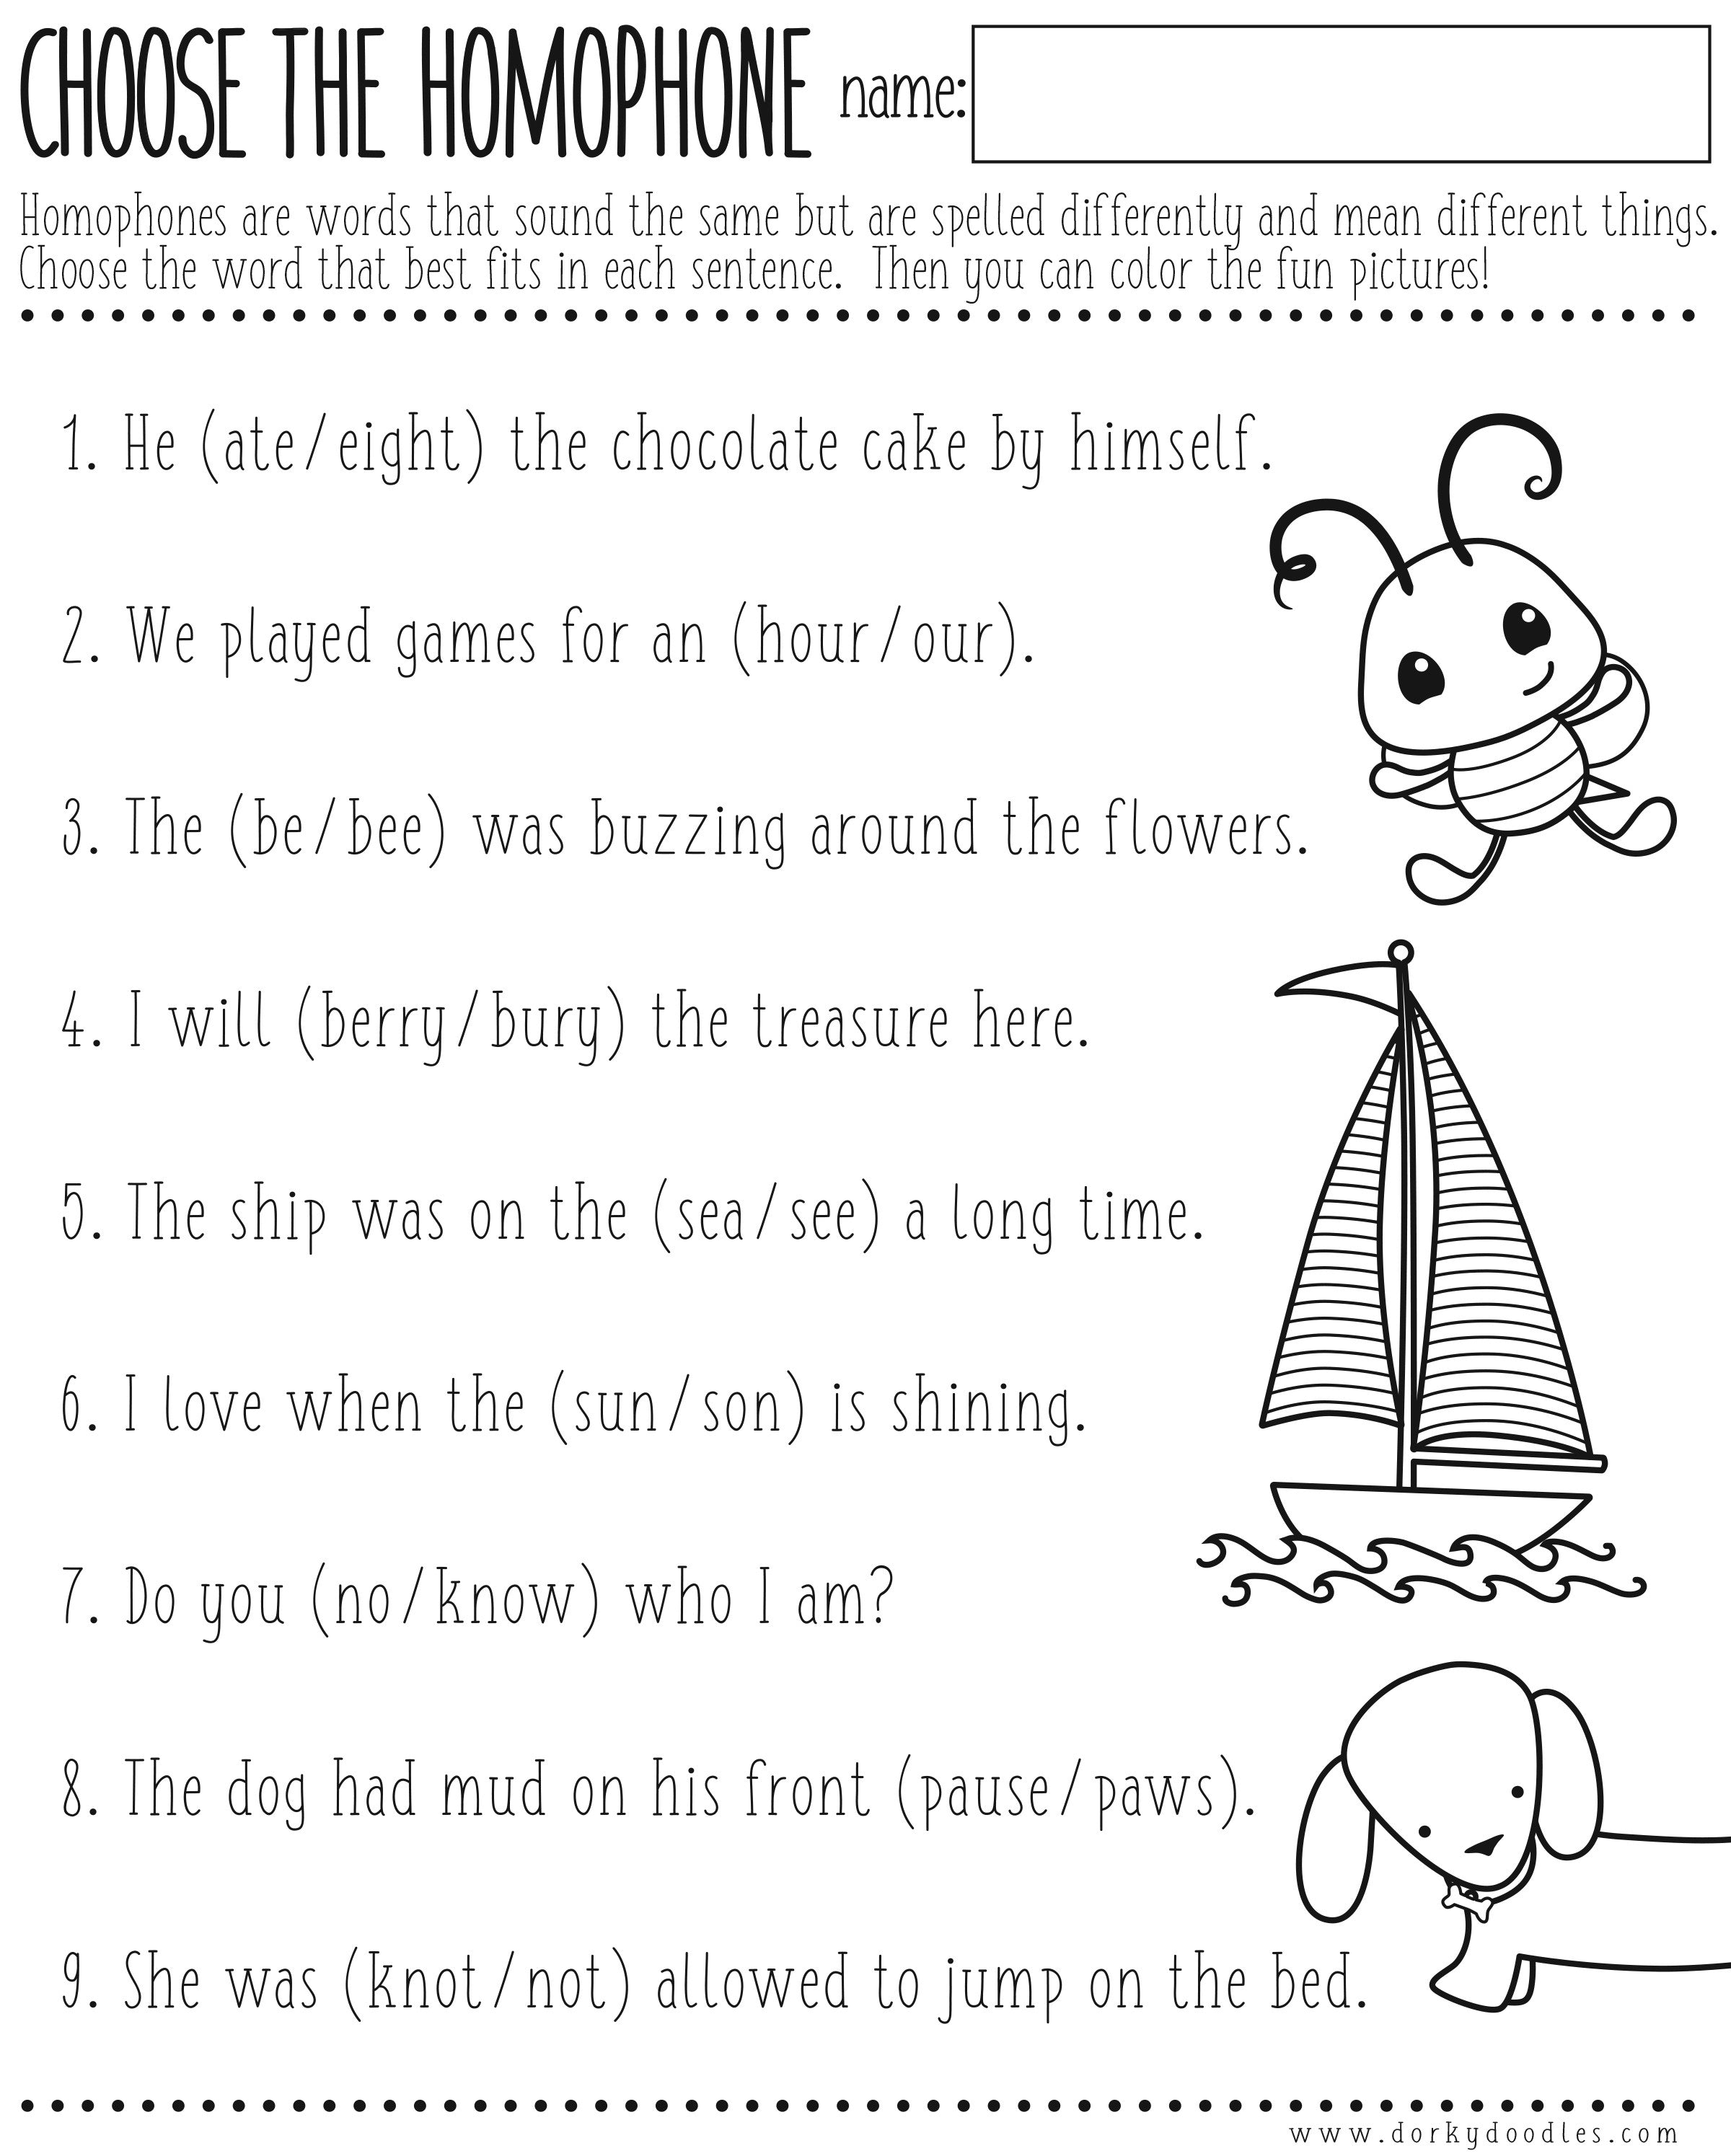 Homophones Worksheet Printable – Dorky Doodles